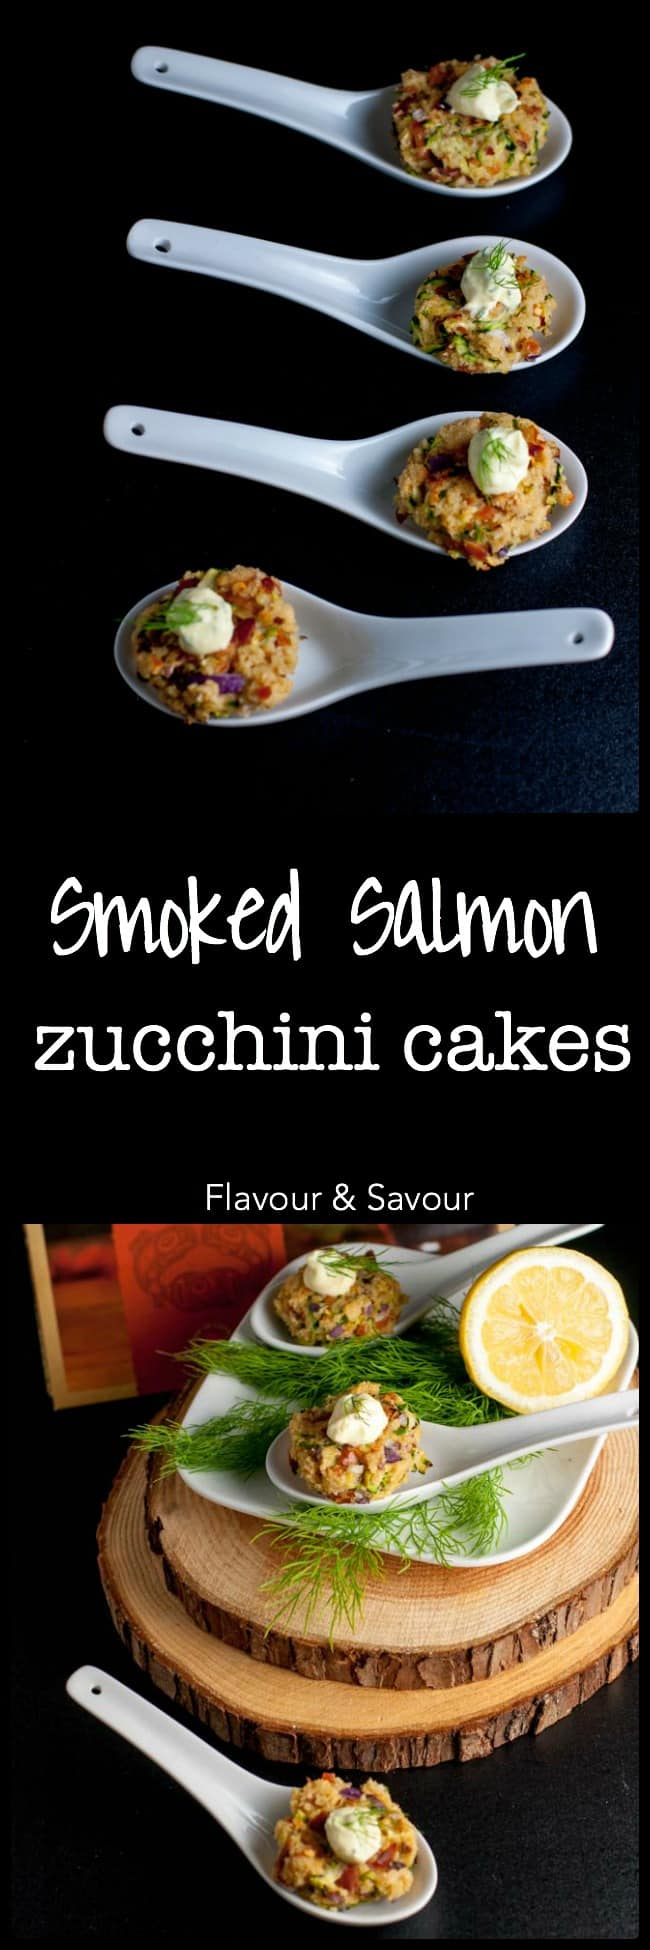 Smoked Salmon Zucchini Cakes make a healthy savoury appetizer. They're baked, not fried! These crispy little zucchini fritters with a Lemon Dill Dip get snapped up quickly! |www.flavourandsavour.com